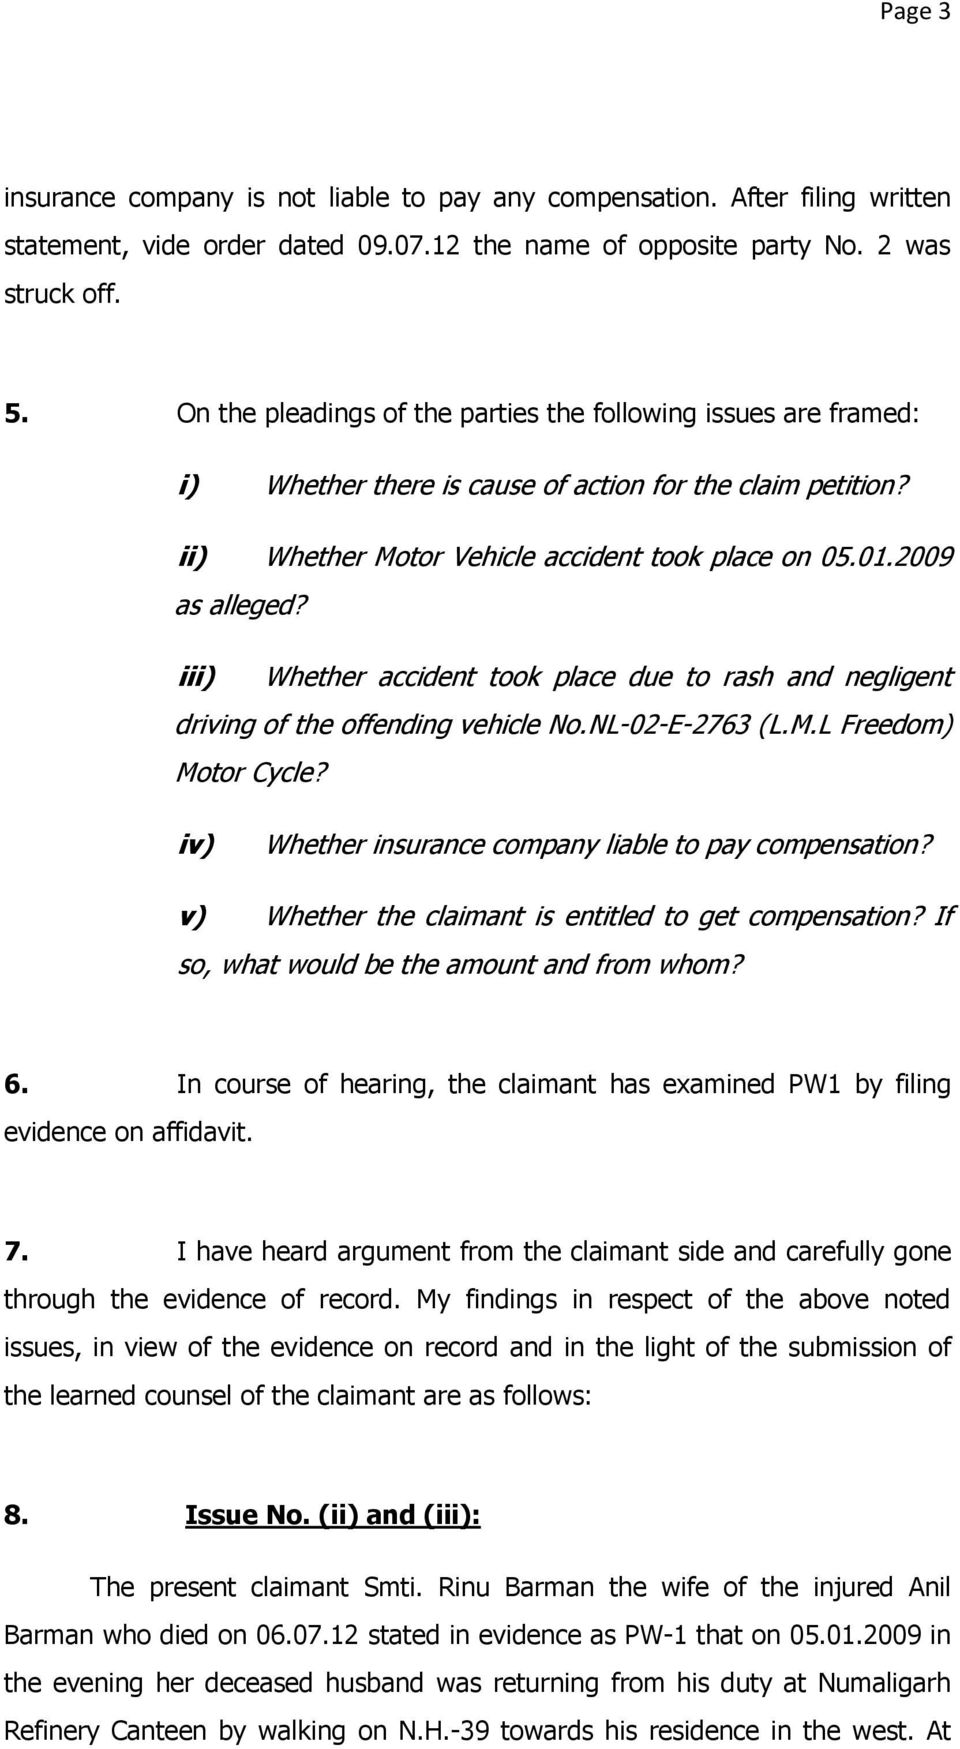 iii) Whether accident took place due to rash and negligent driving of the offending vehicle No.NL-02-E-2763 (L.M.L Freedom) Motor Cycle? iv) Whether insurance company liable to pay compensation?